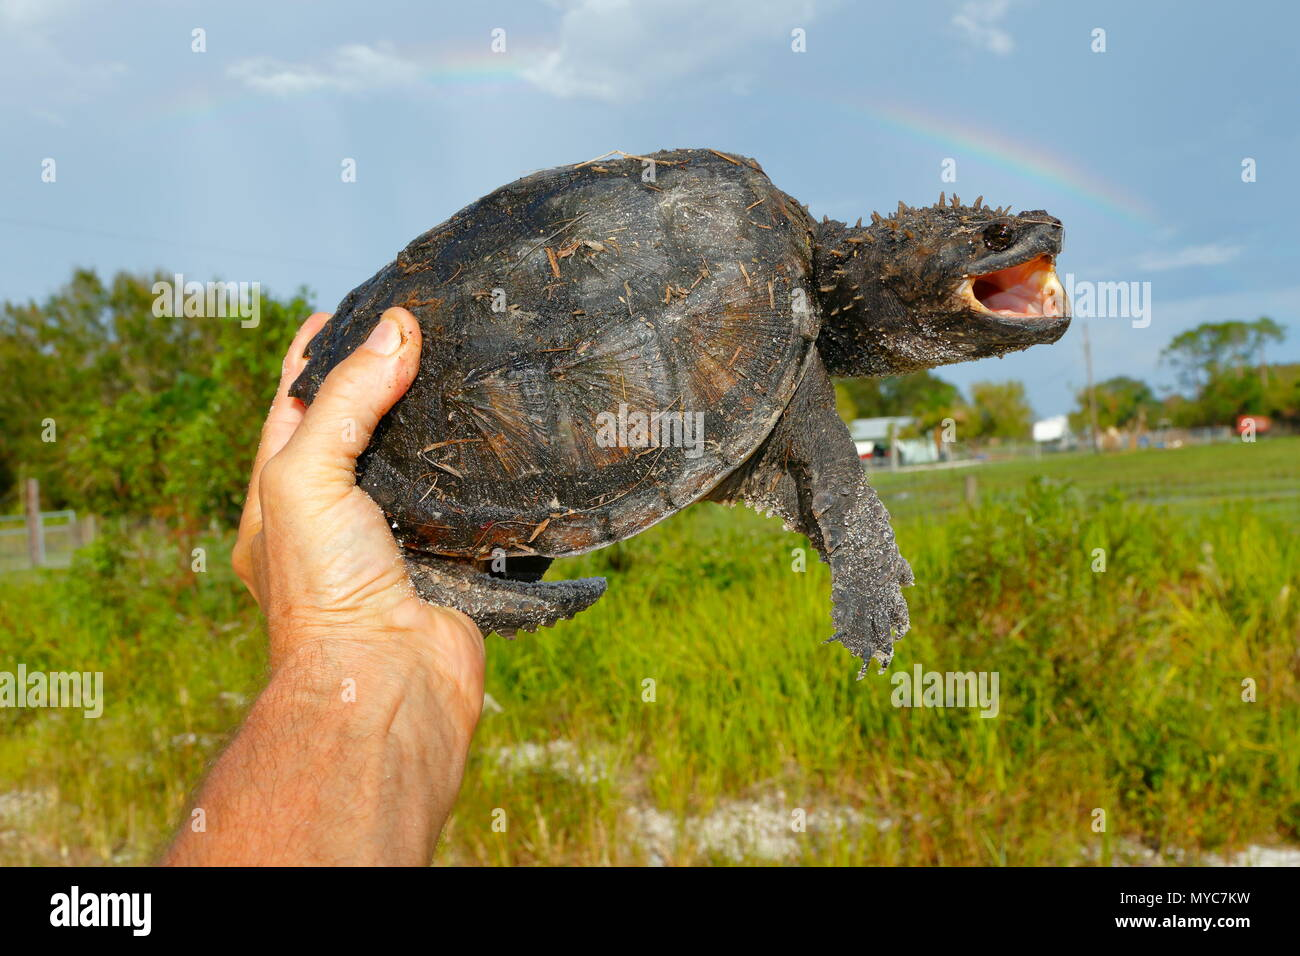 A Florida snapping turtle, Chelydra s. osceola, held by hand where found on a road. - Stock Image